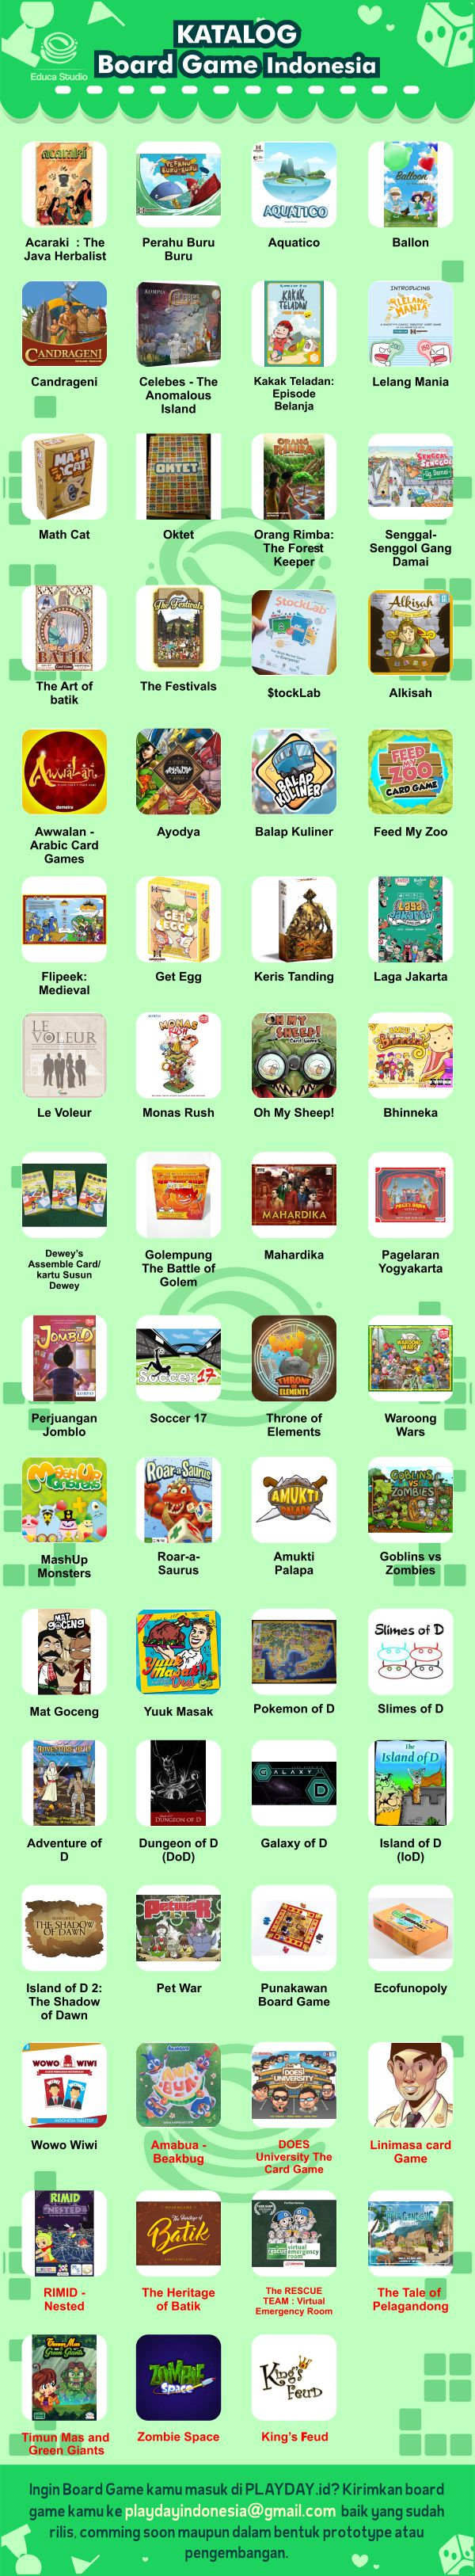 katalog-boardgame-indonesia-2018